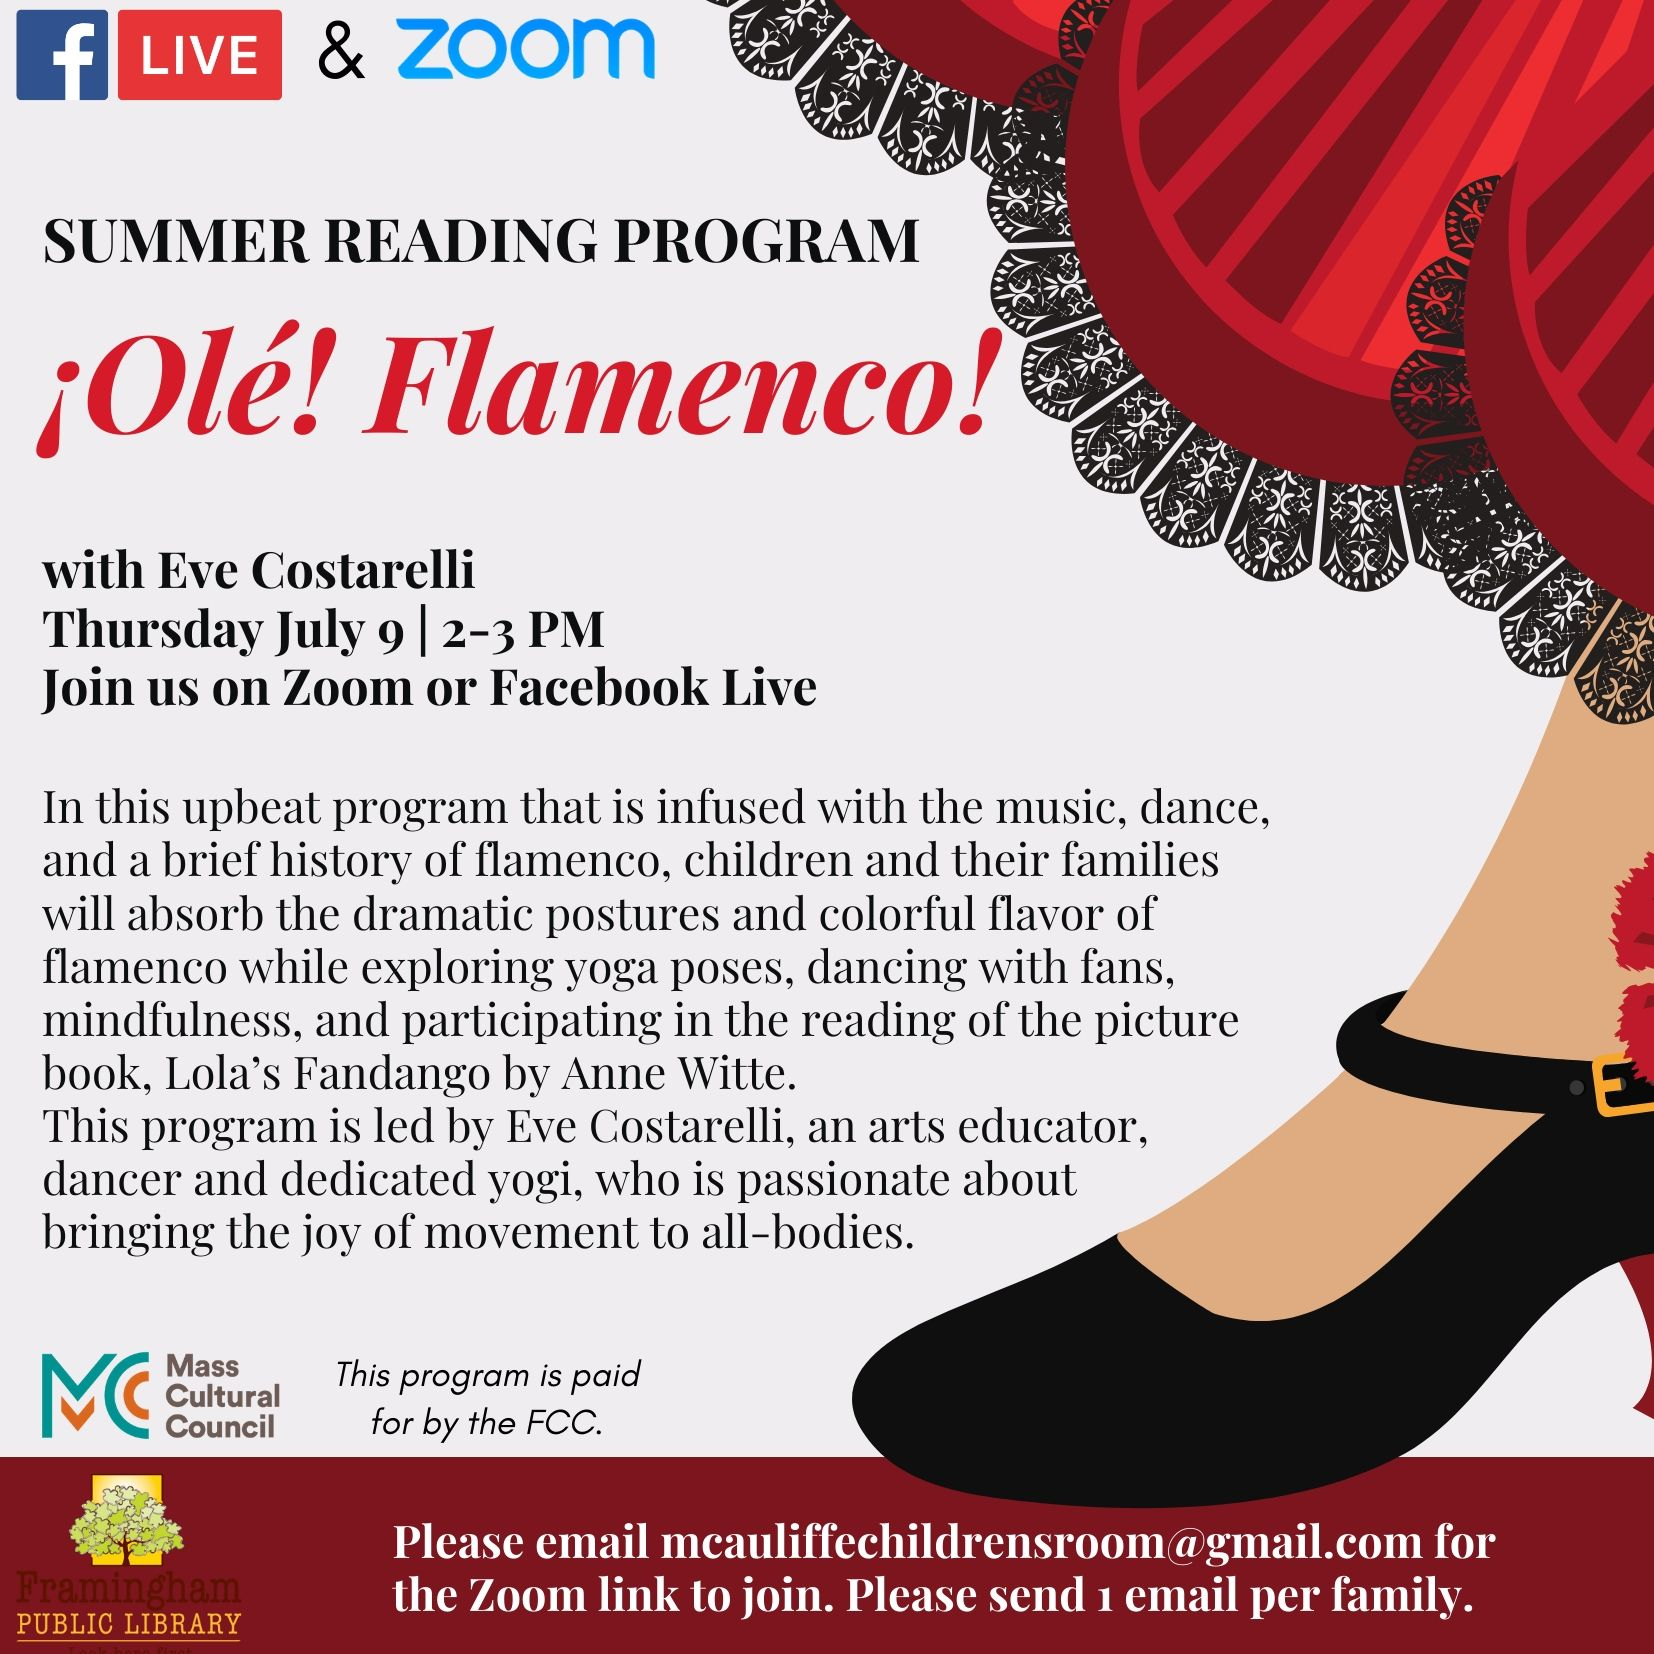 ¡Olé! Flamenco with Eve Costarelli thumbnail Photo